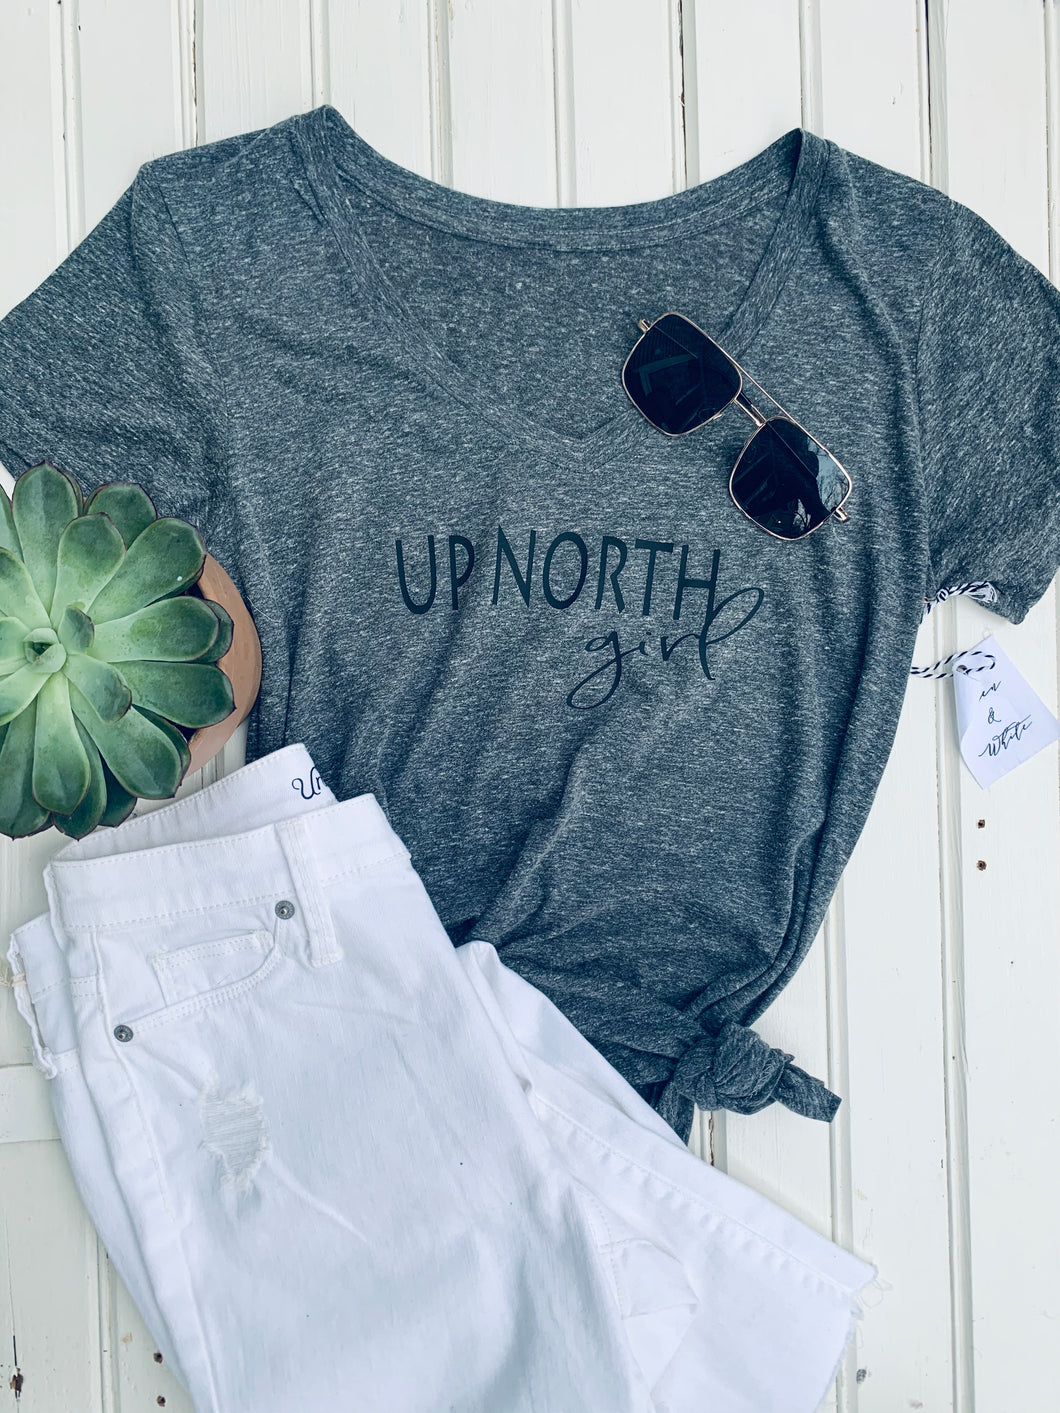 [Z] Up North Girl Classic V-Neck Tee - Black Heather